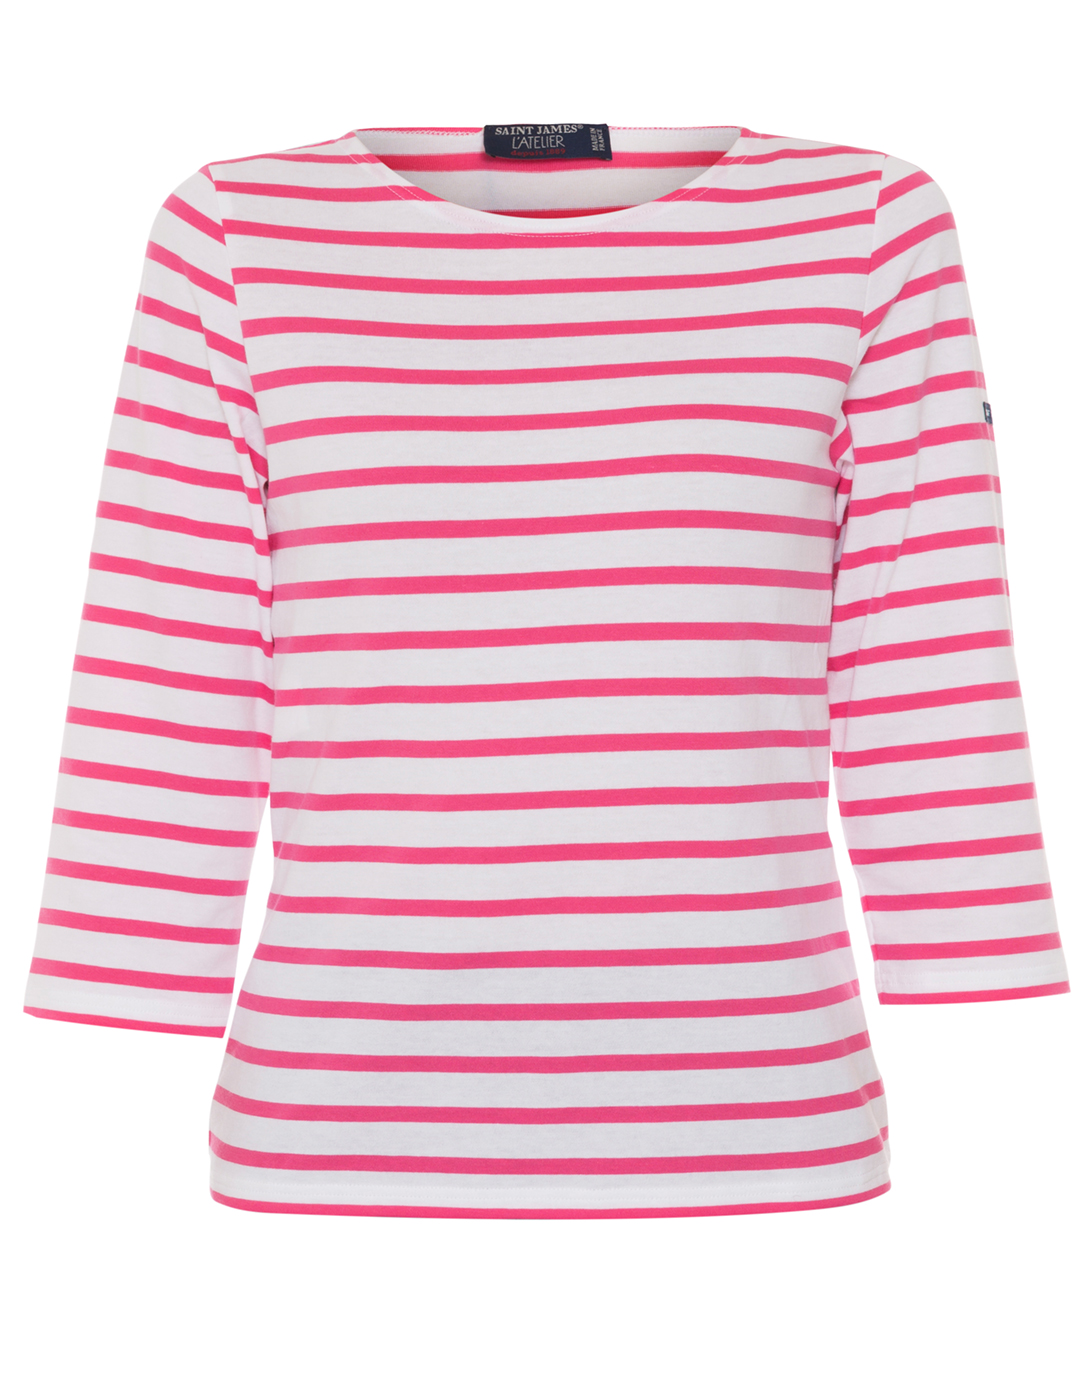 Galathee white and hot pink striped shirt saint james for Pink white striped shirt